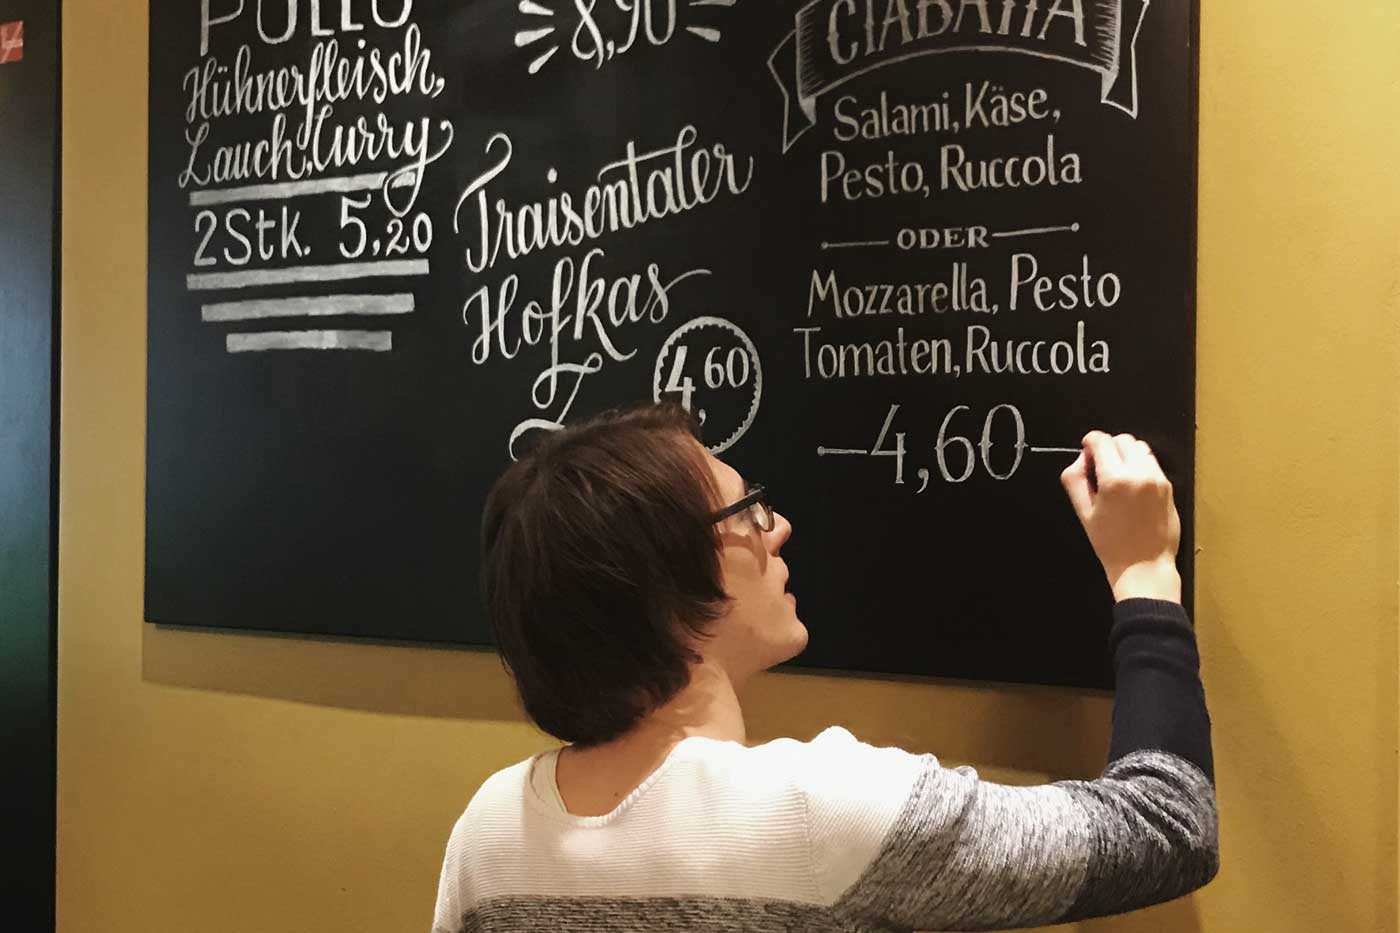 Adding the final touch to the chalkboard lettering